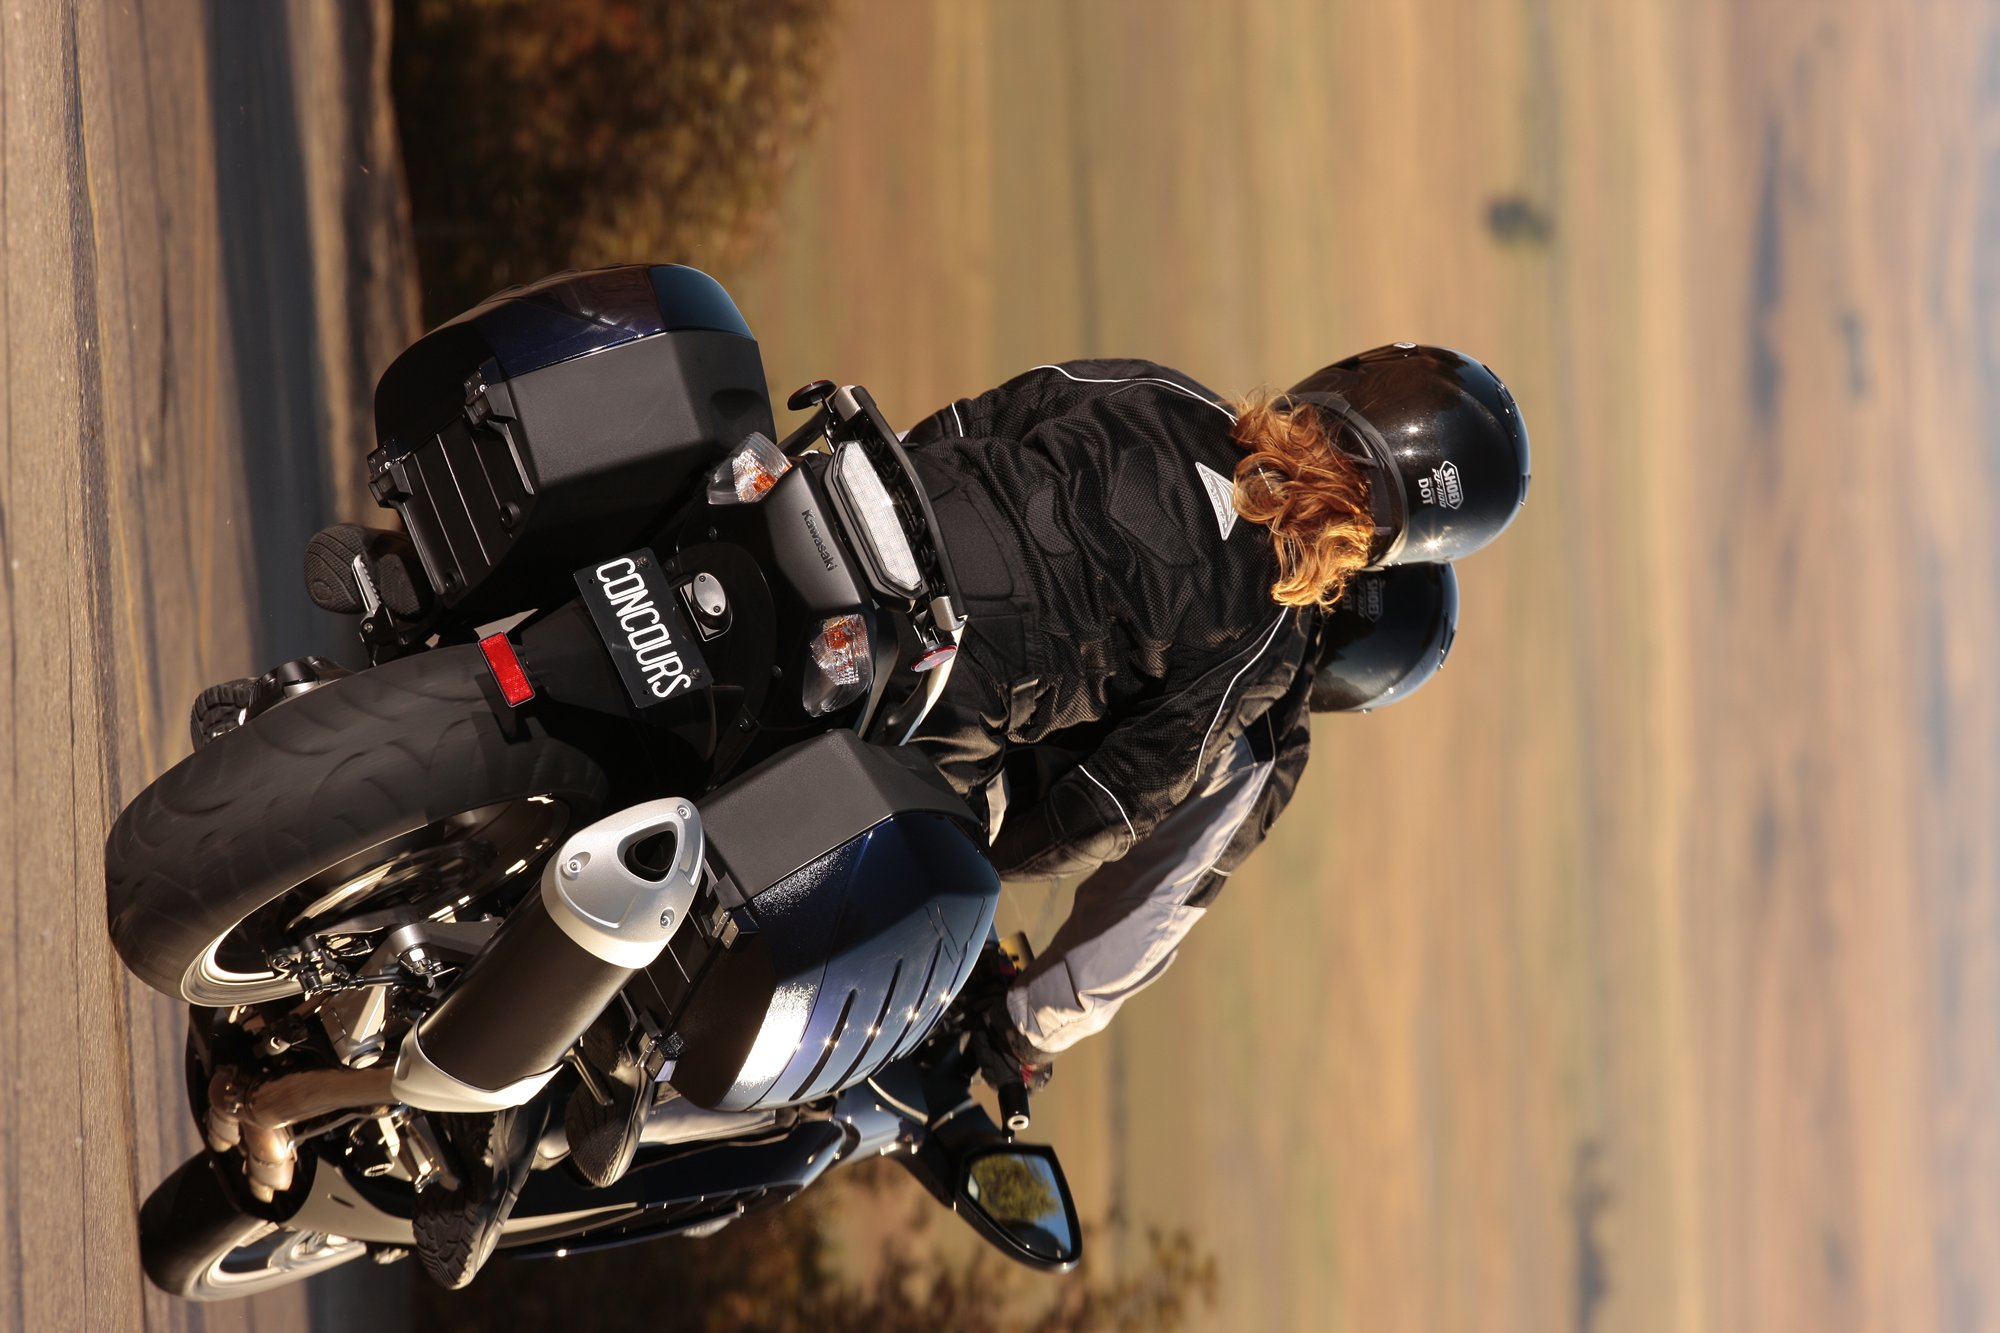 hight resolution of 2010 kawasaki concours 14 abs top speed